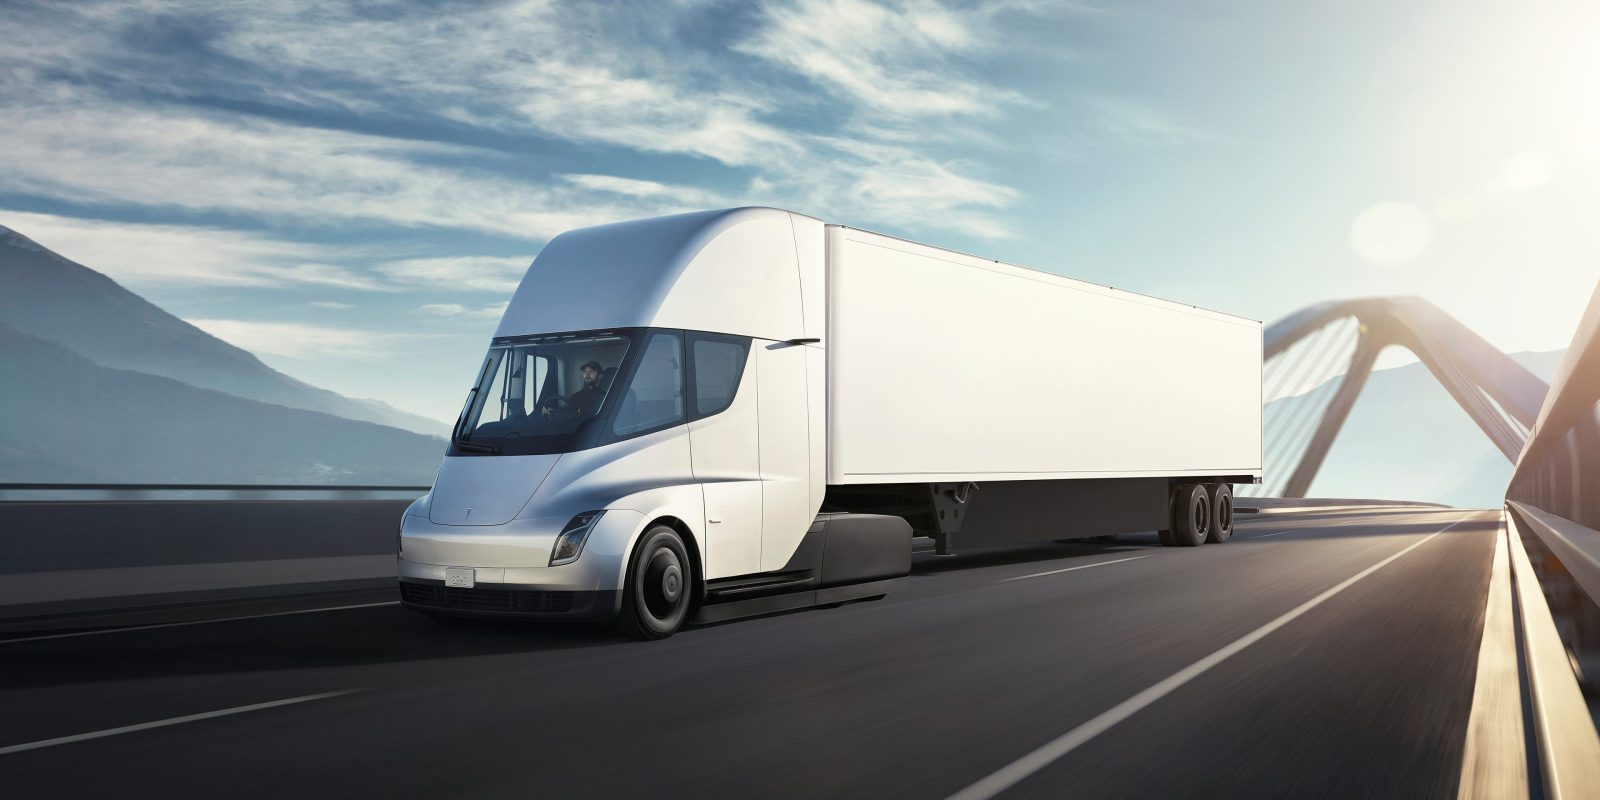 medium resolution of tesla semi is not scaring daimler ceo throws cold water and says they will dominate electric trucks